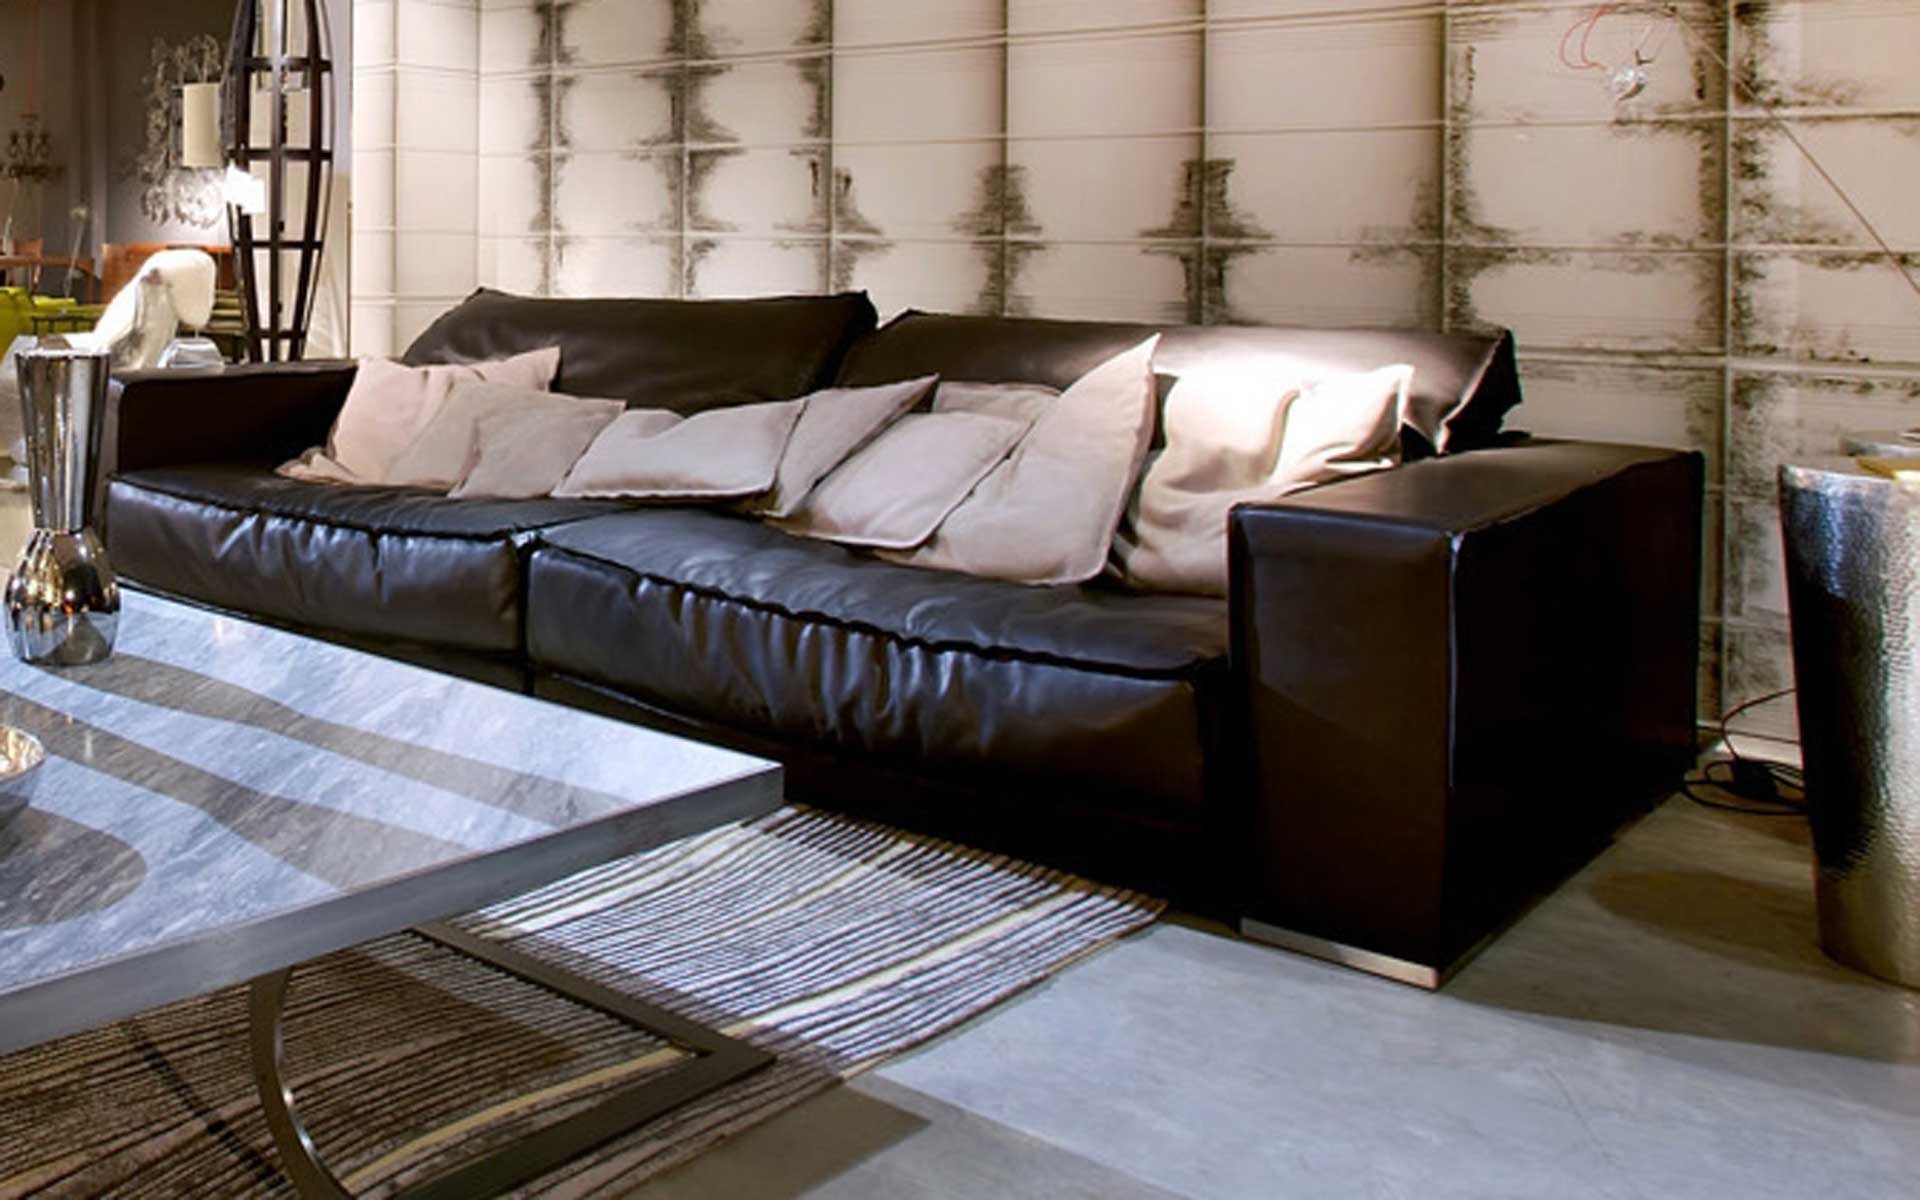 Leather Sectional Sofa Budapest Soft, Baxter